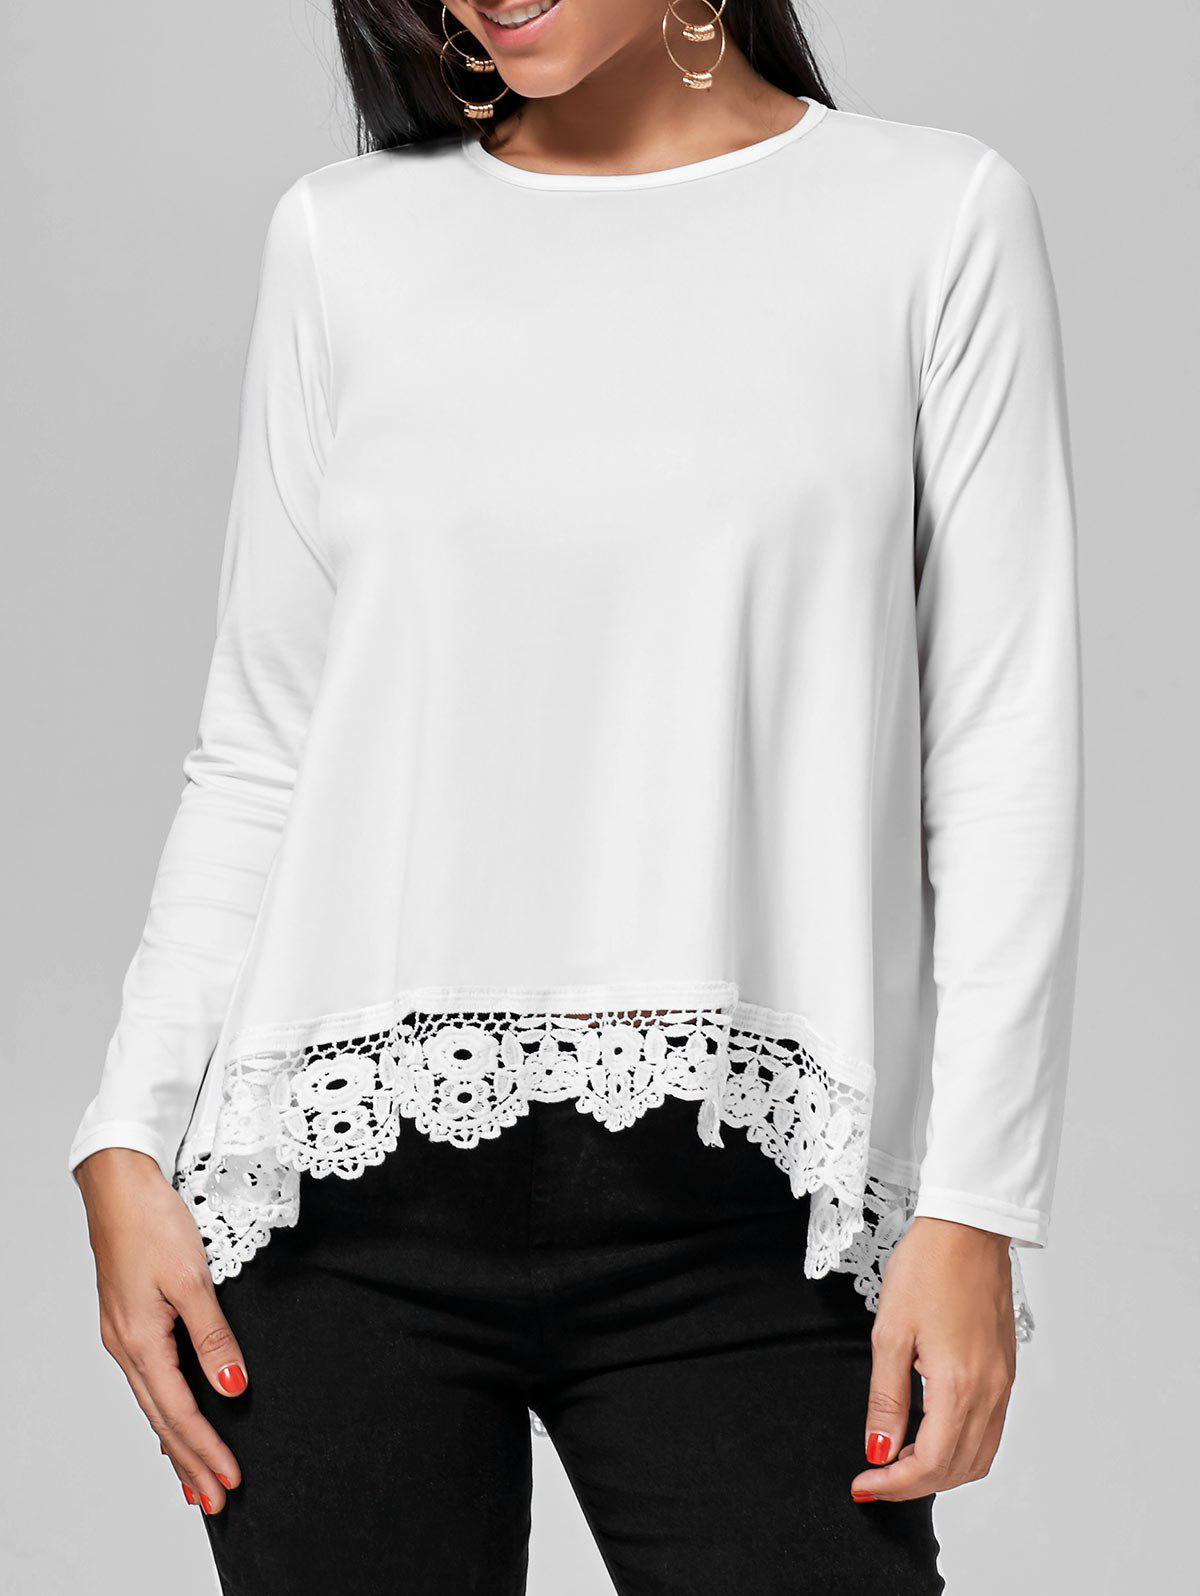 Long Sleeve High Low Lace Insert Tee sanctuary new tan long sleeve lace inset tee xs $49 dbfl